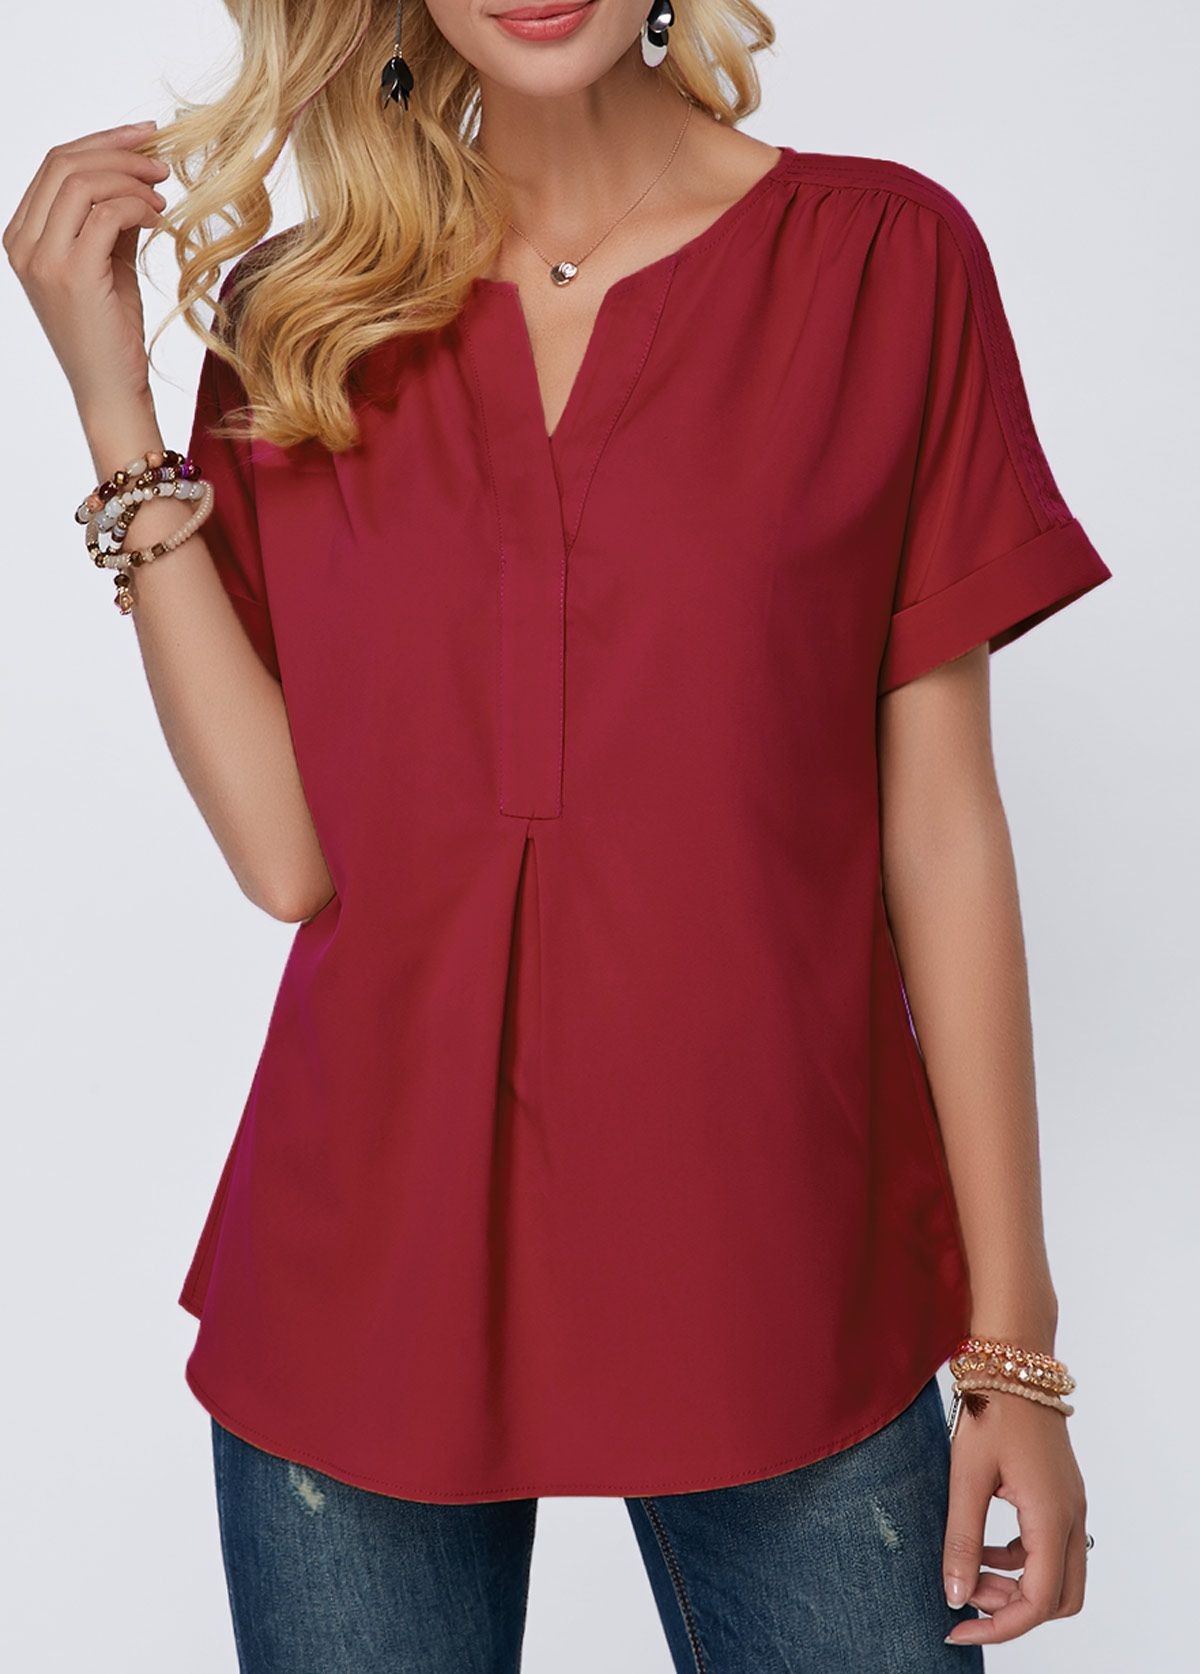 Split Neck Short Sleeve Wine Red Blouse Modlily Com Usd 28 85 Wine Red Blouse Ladies Tops Fashion Red Blouses